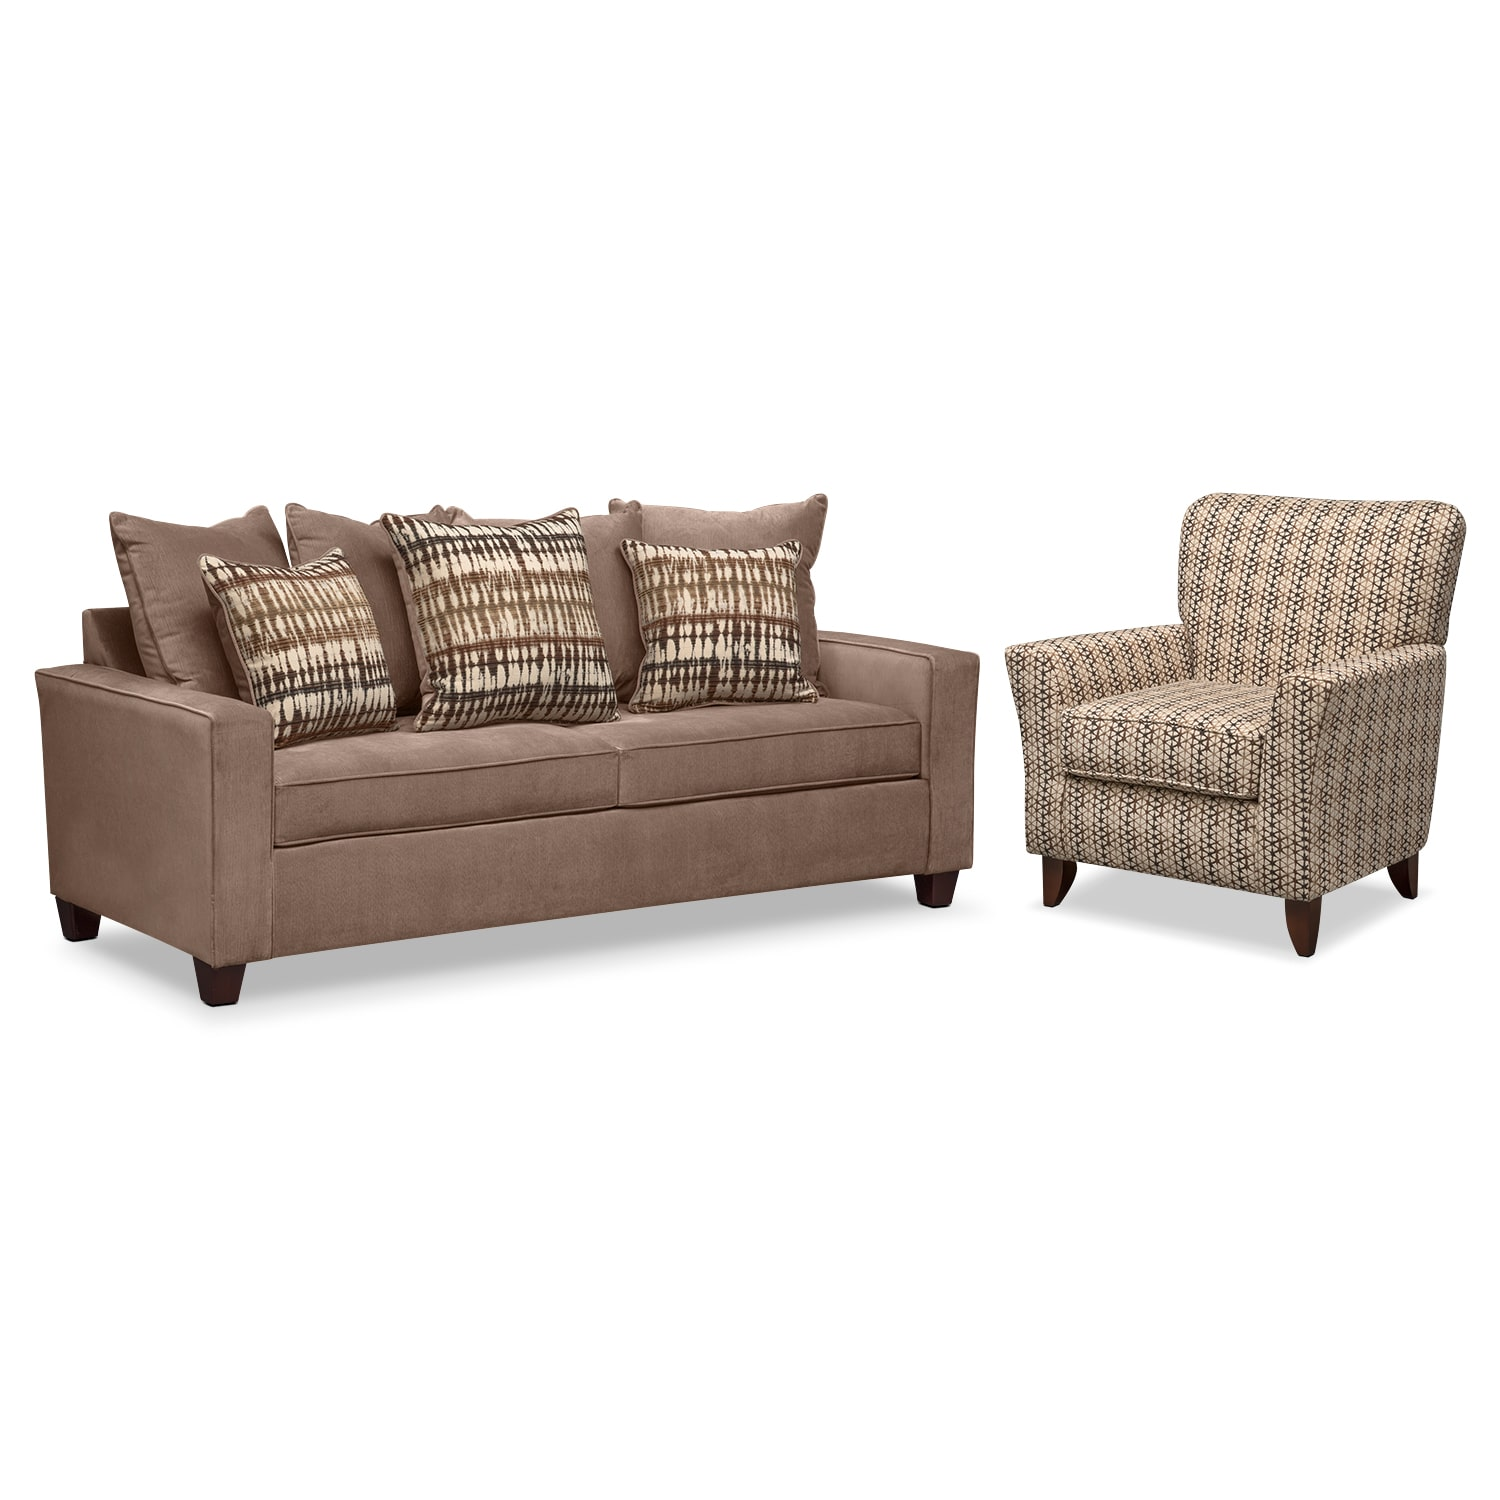 Living Room Furniture - Bryden Sofa and Accent Chair Set - Chocolate